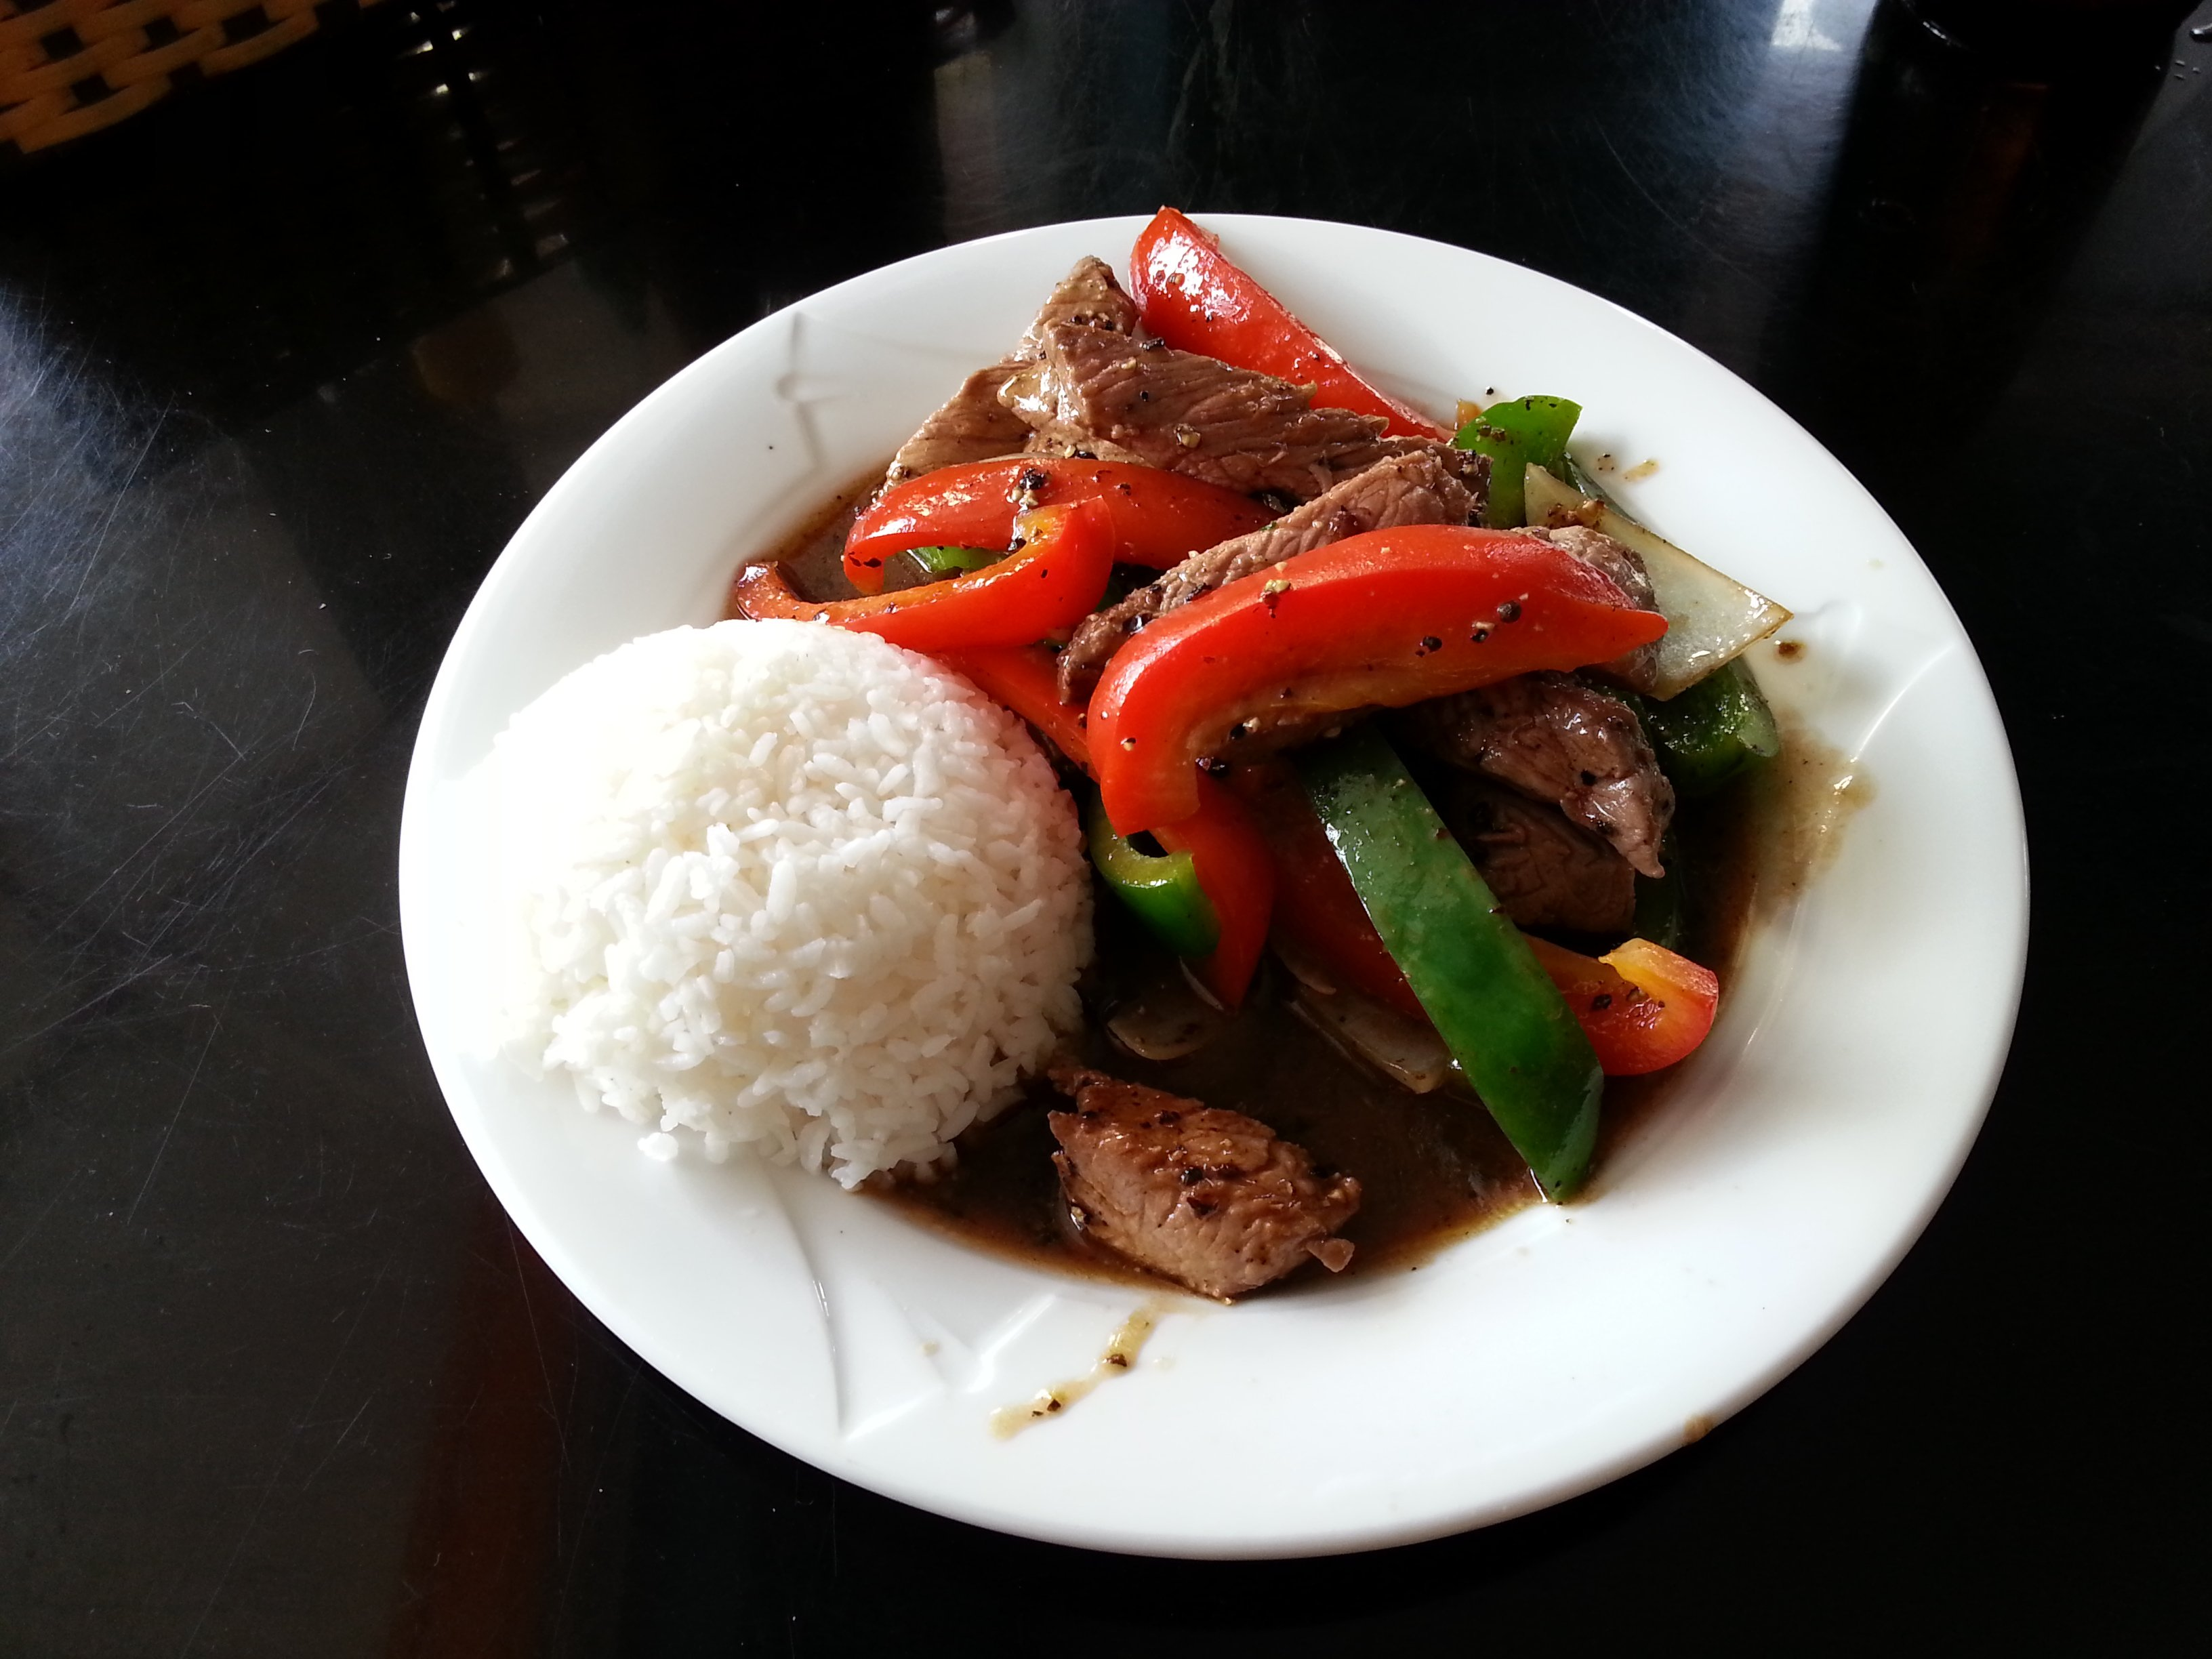 Beef in pepper sauce at Xuan Trang Restaurant